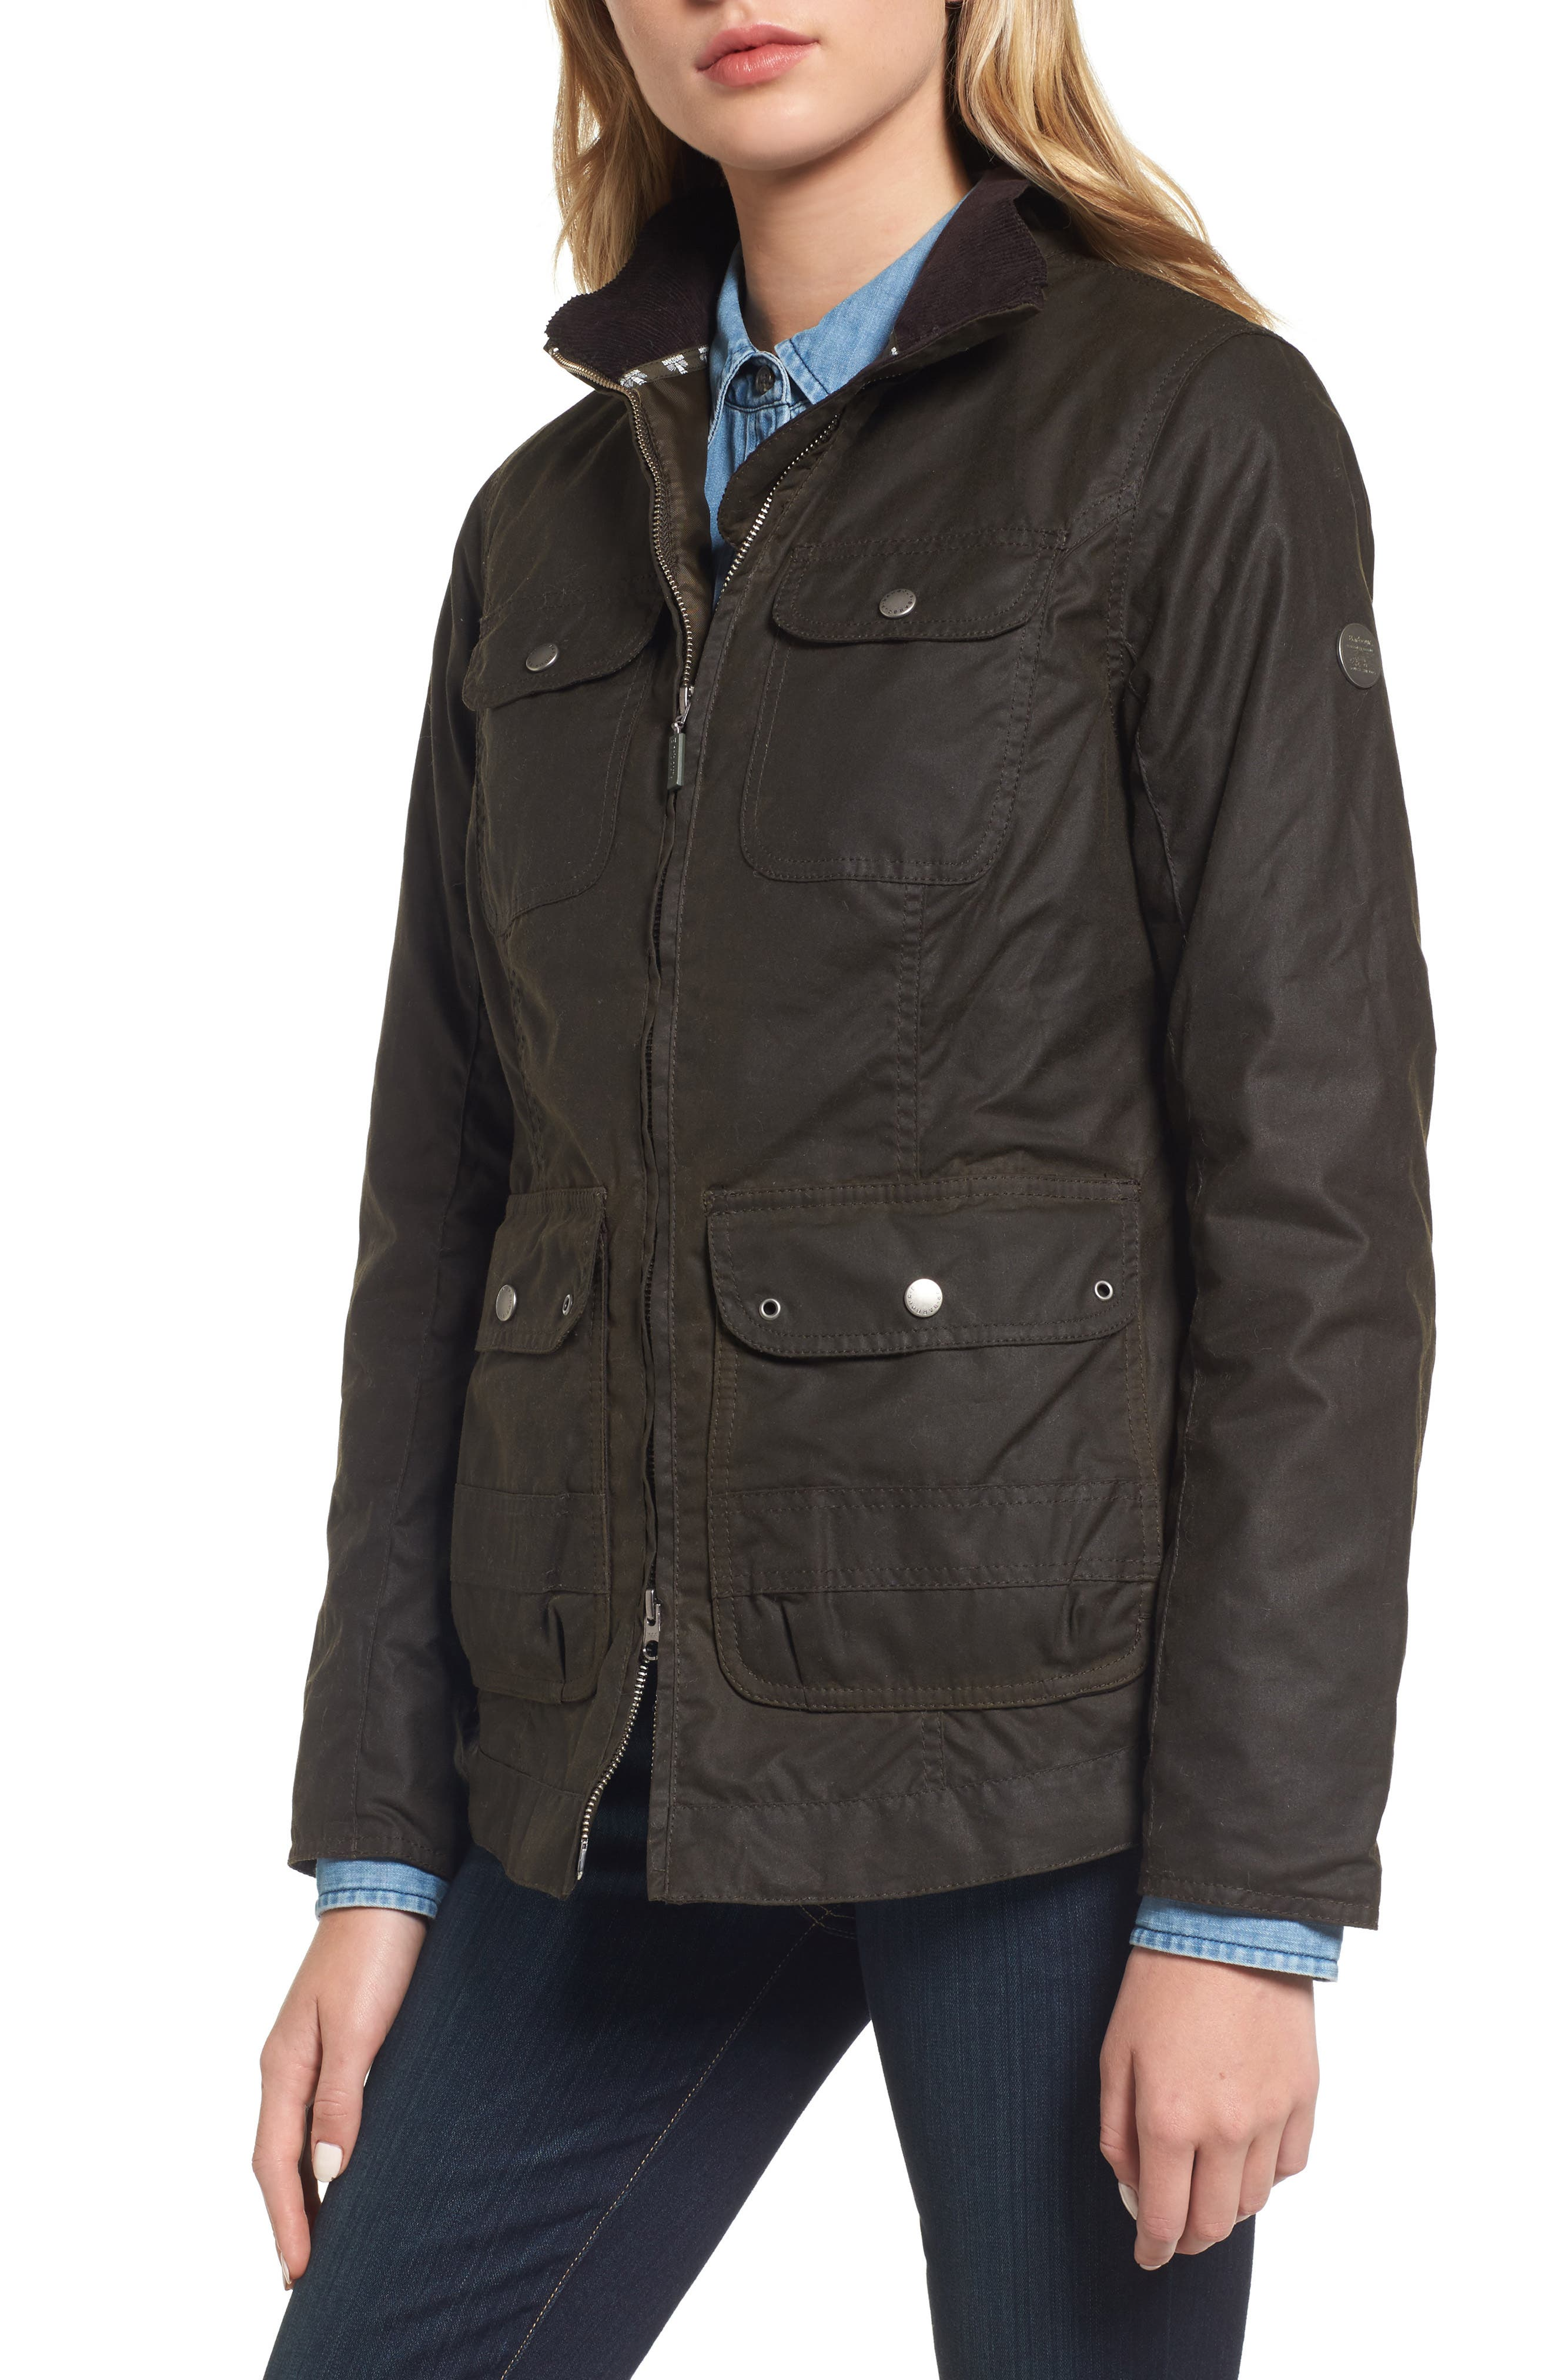 BARBOUR,                             Filey Water Resistant Waxed Canvas Jacket,                             Alternate thumbnail 4, color,                             340